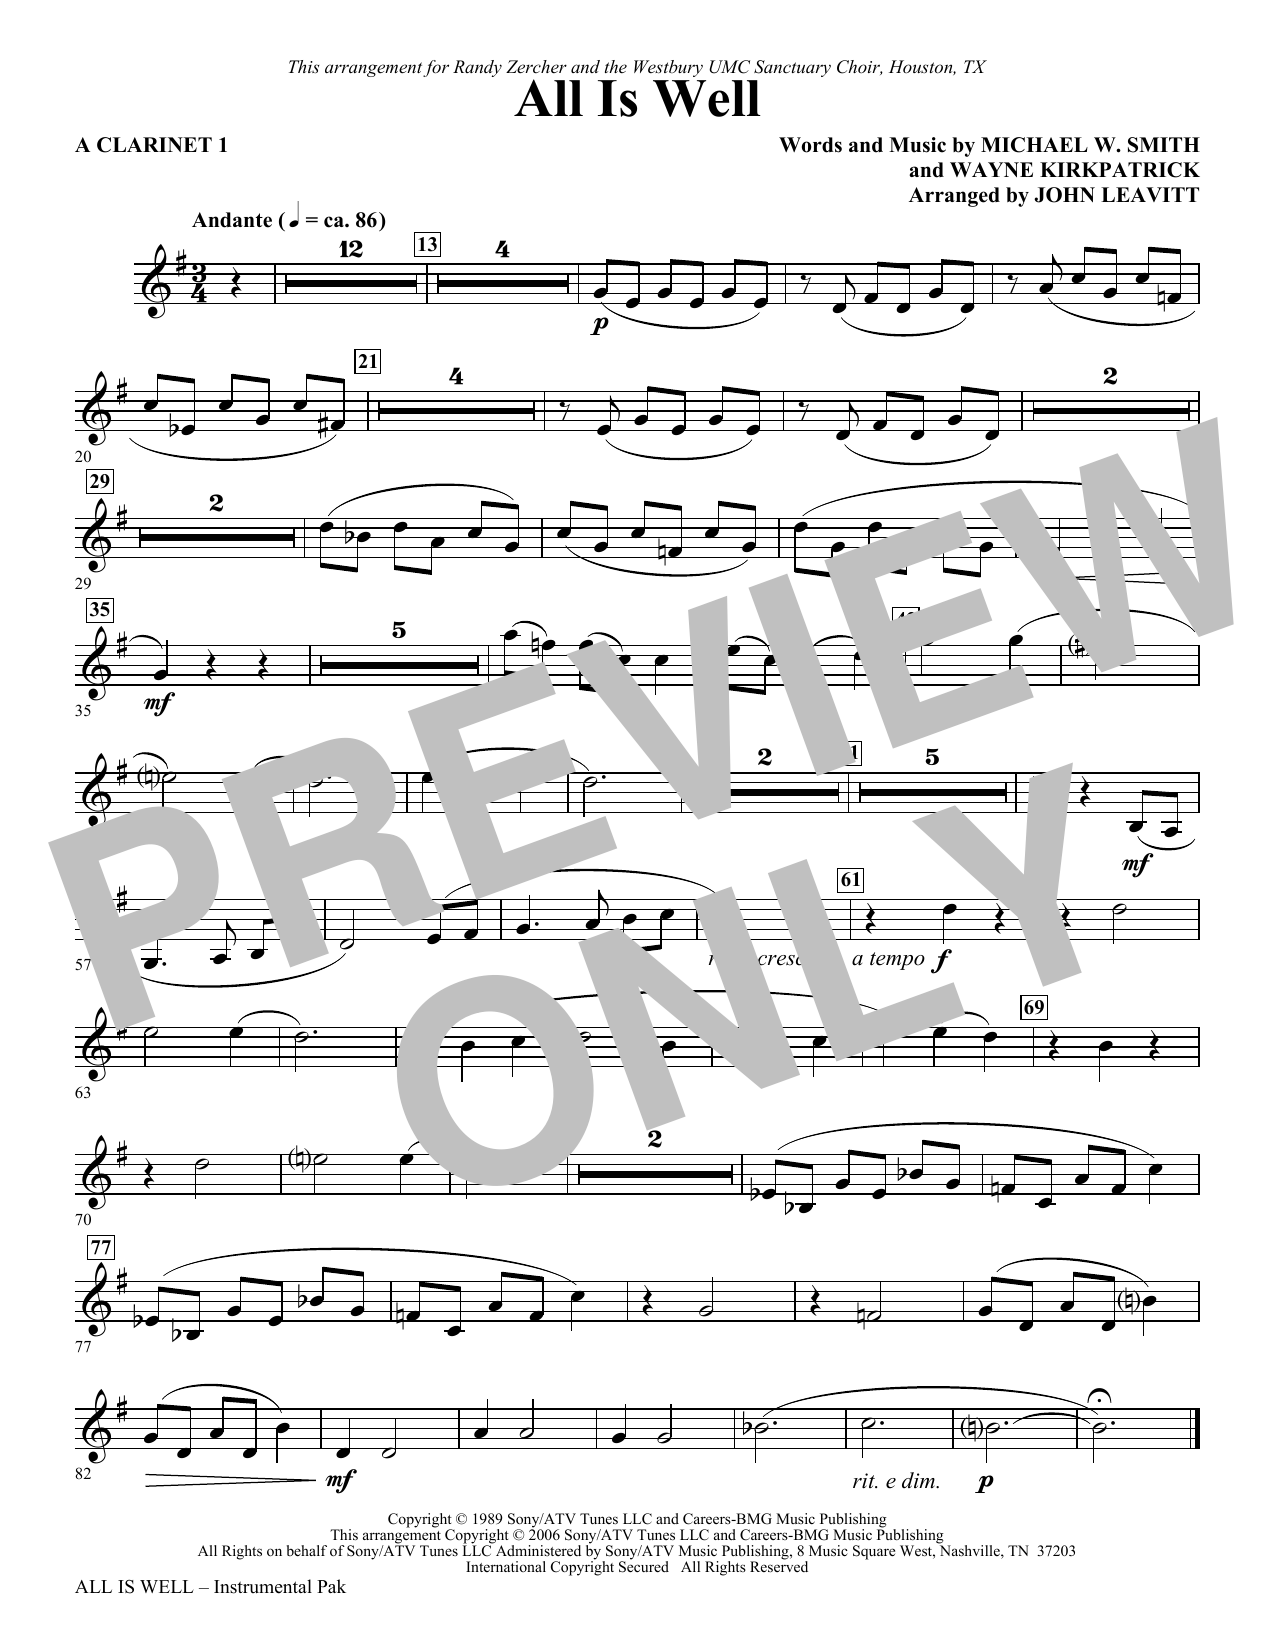 All Is Well - A Clarinet 1 Sheet Music